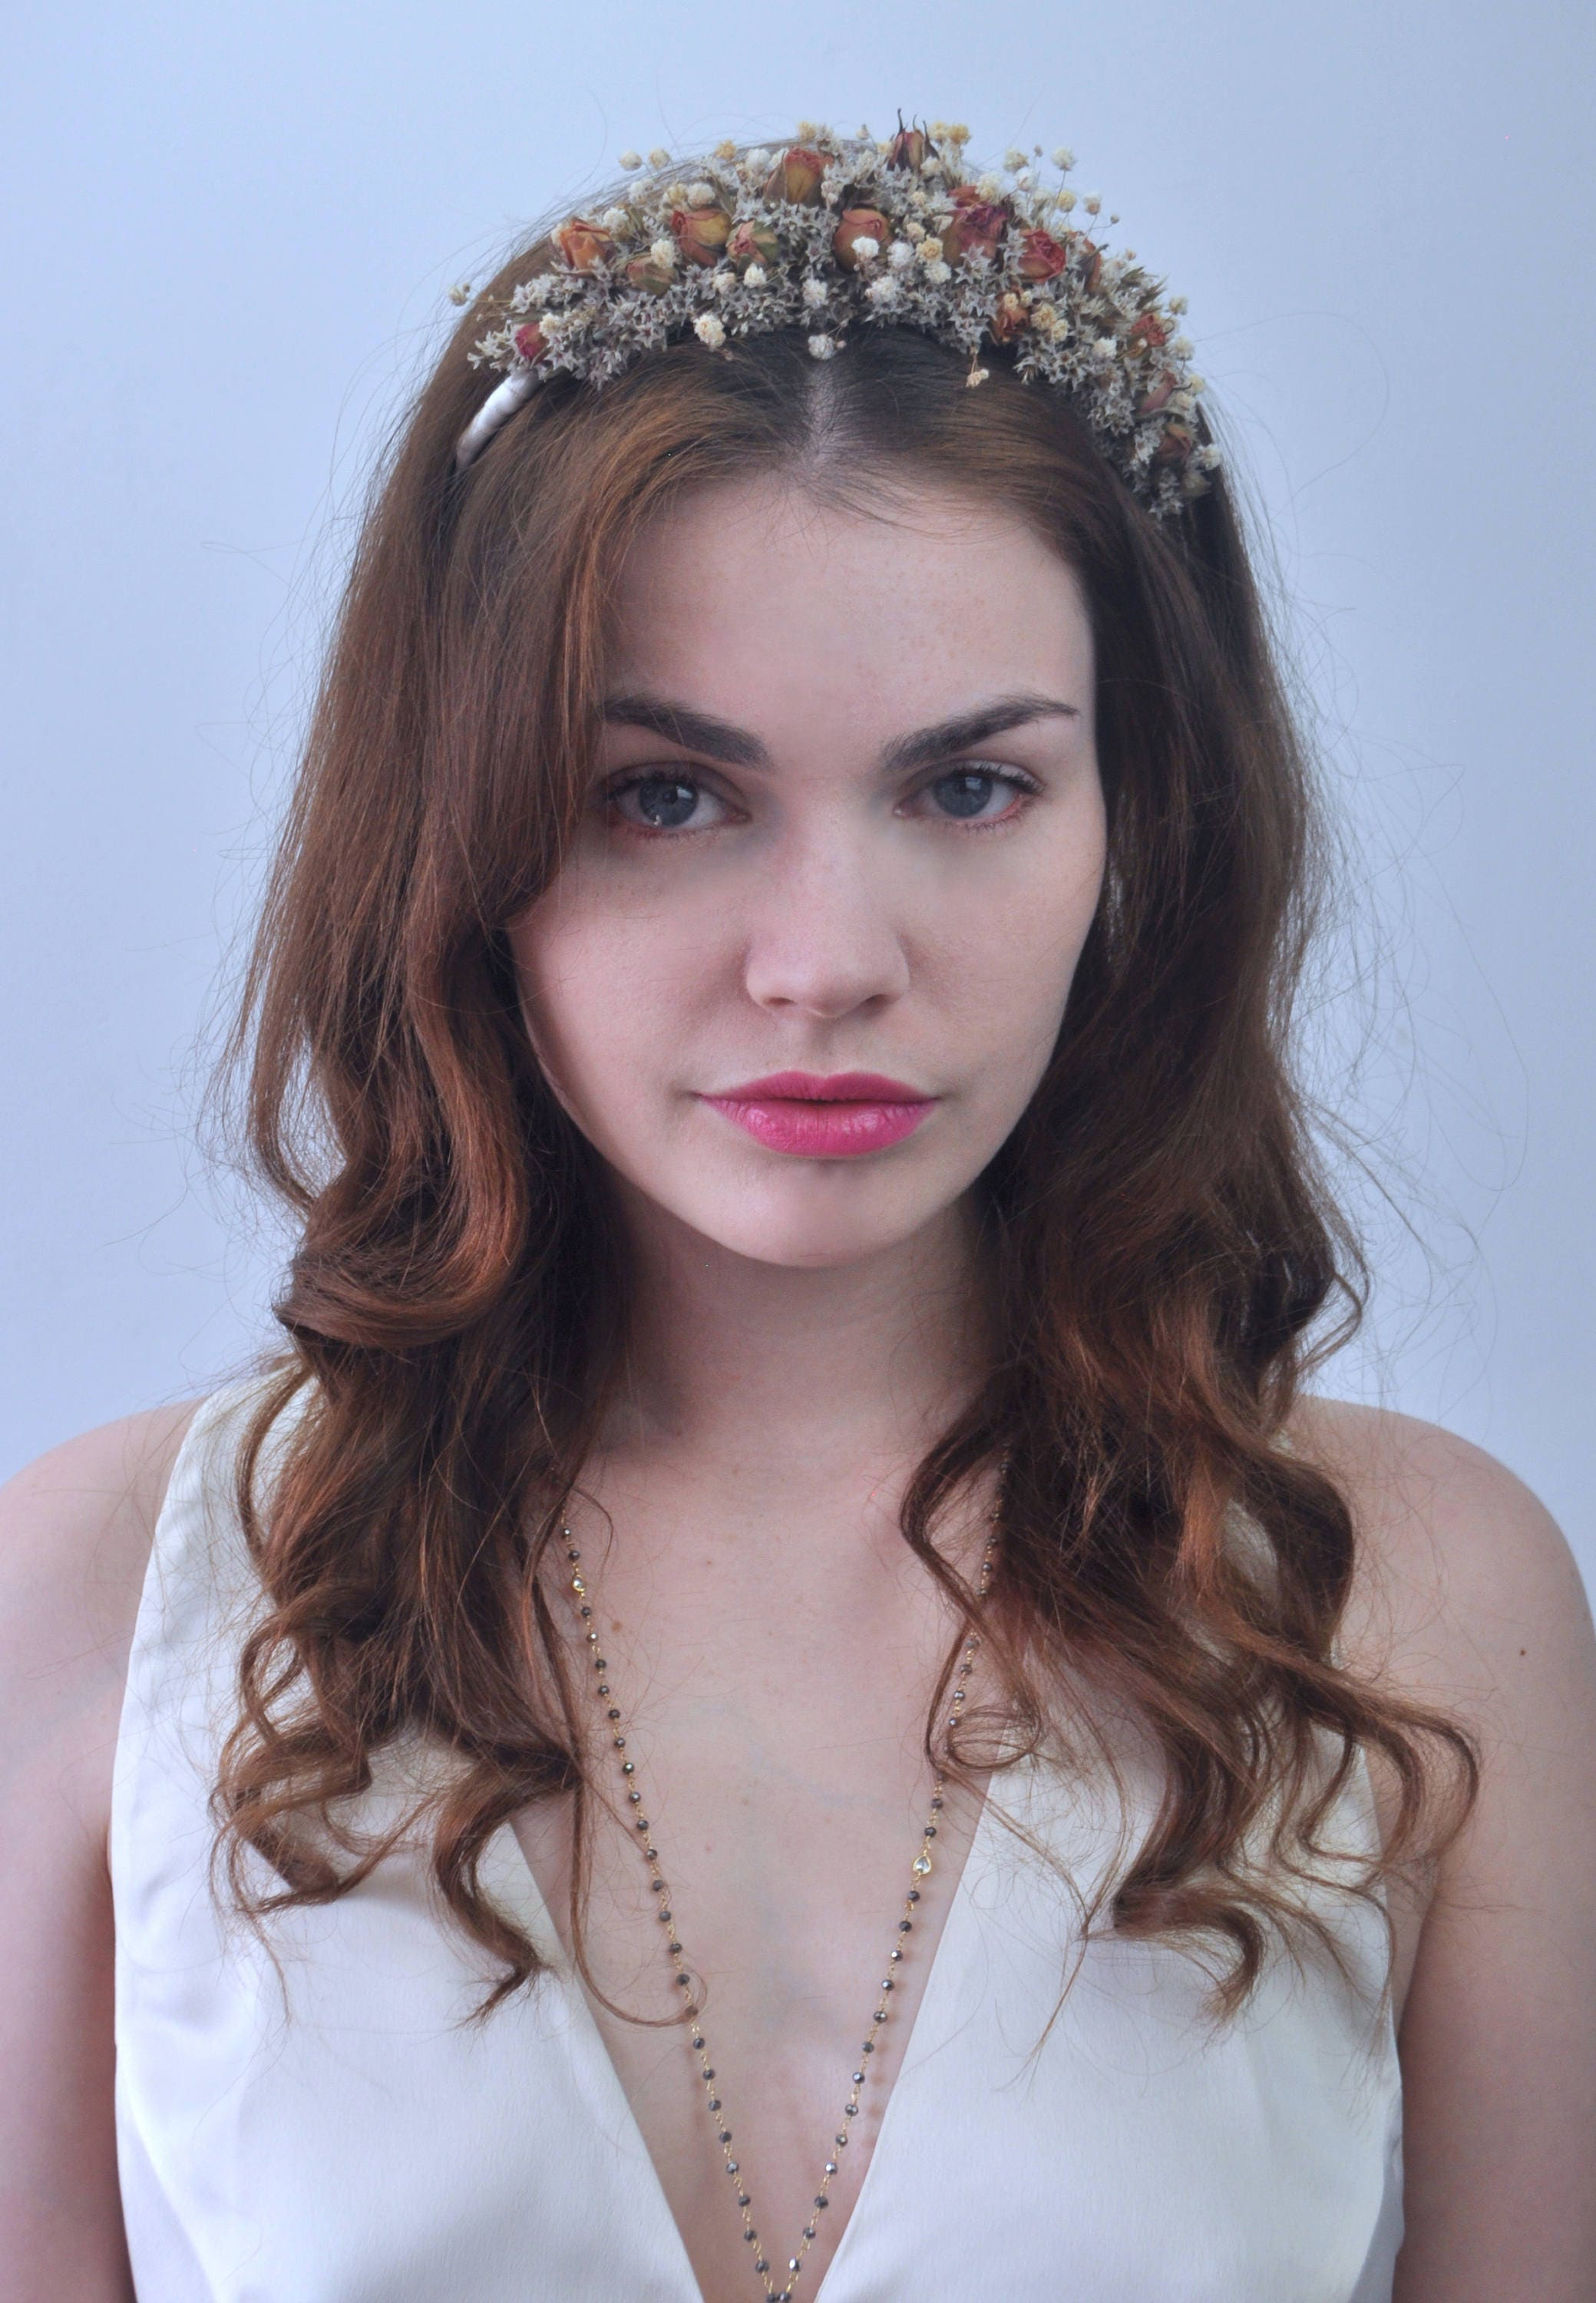 Dried Flower Crown Headband In Off White With Apricot Rose Buds